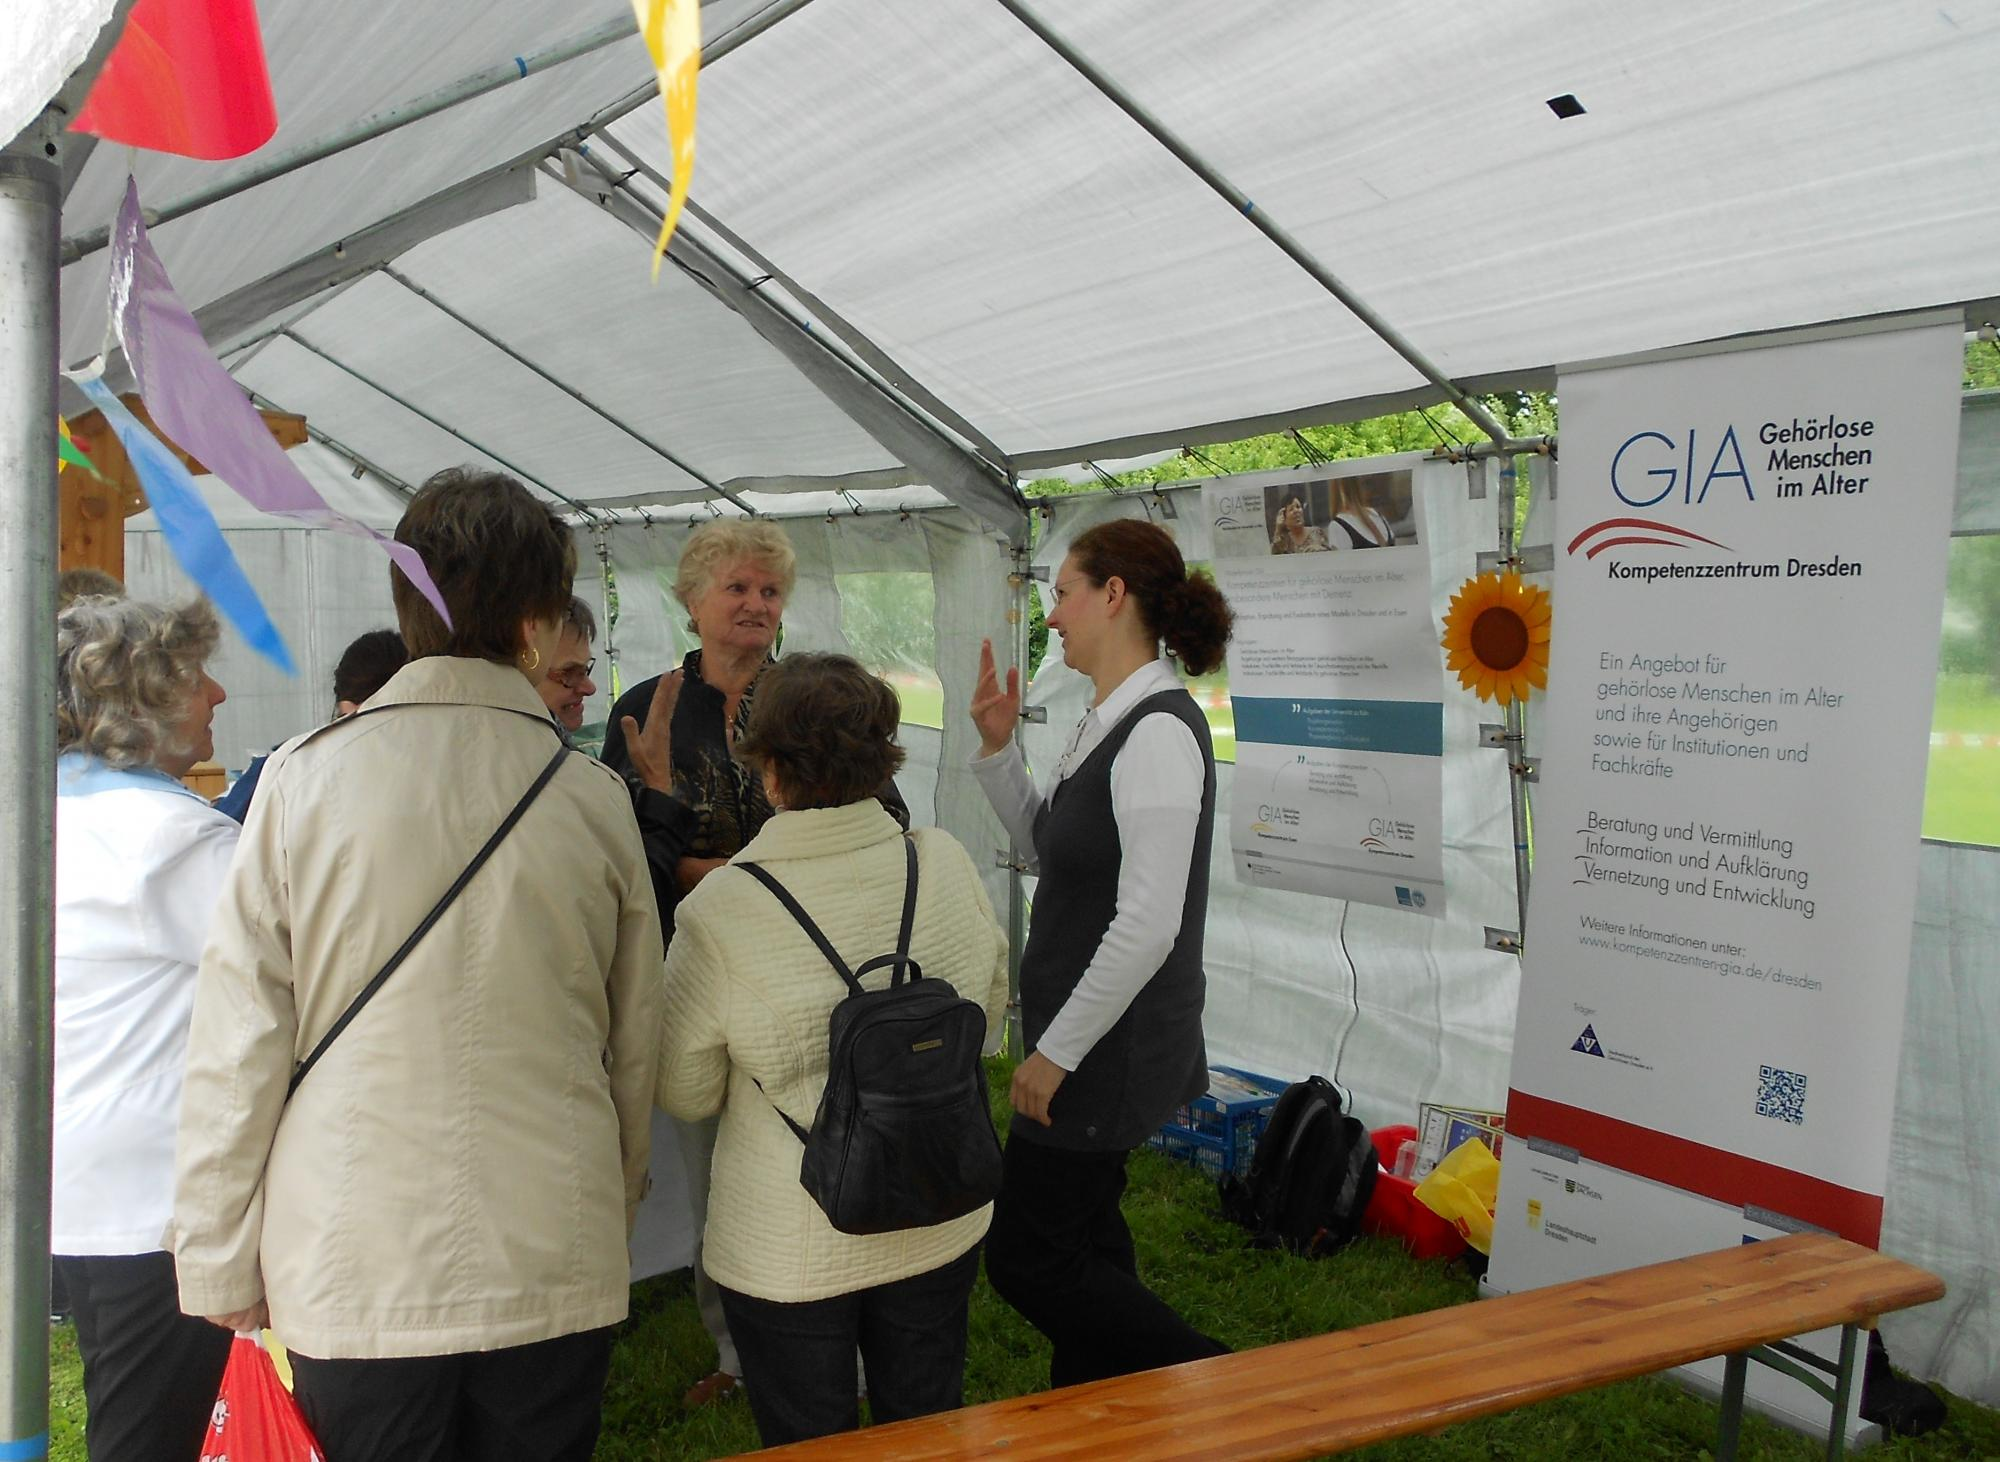 GIA Informationsstand 29.06.13